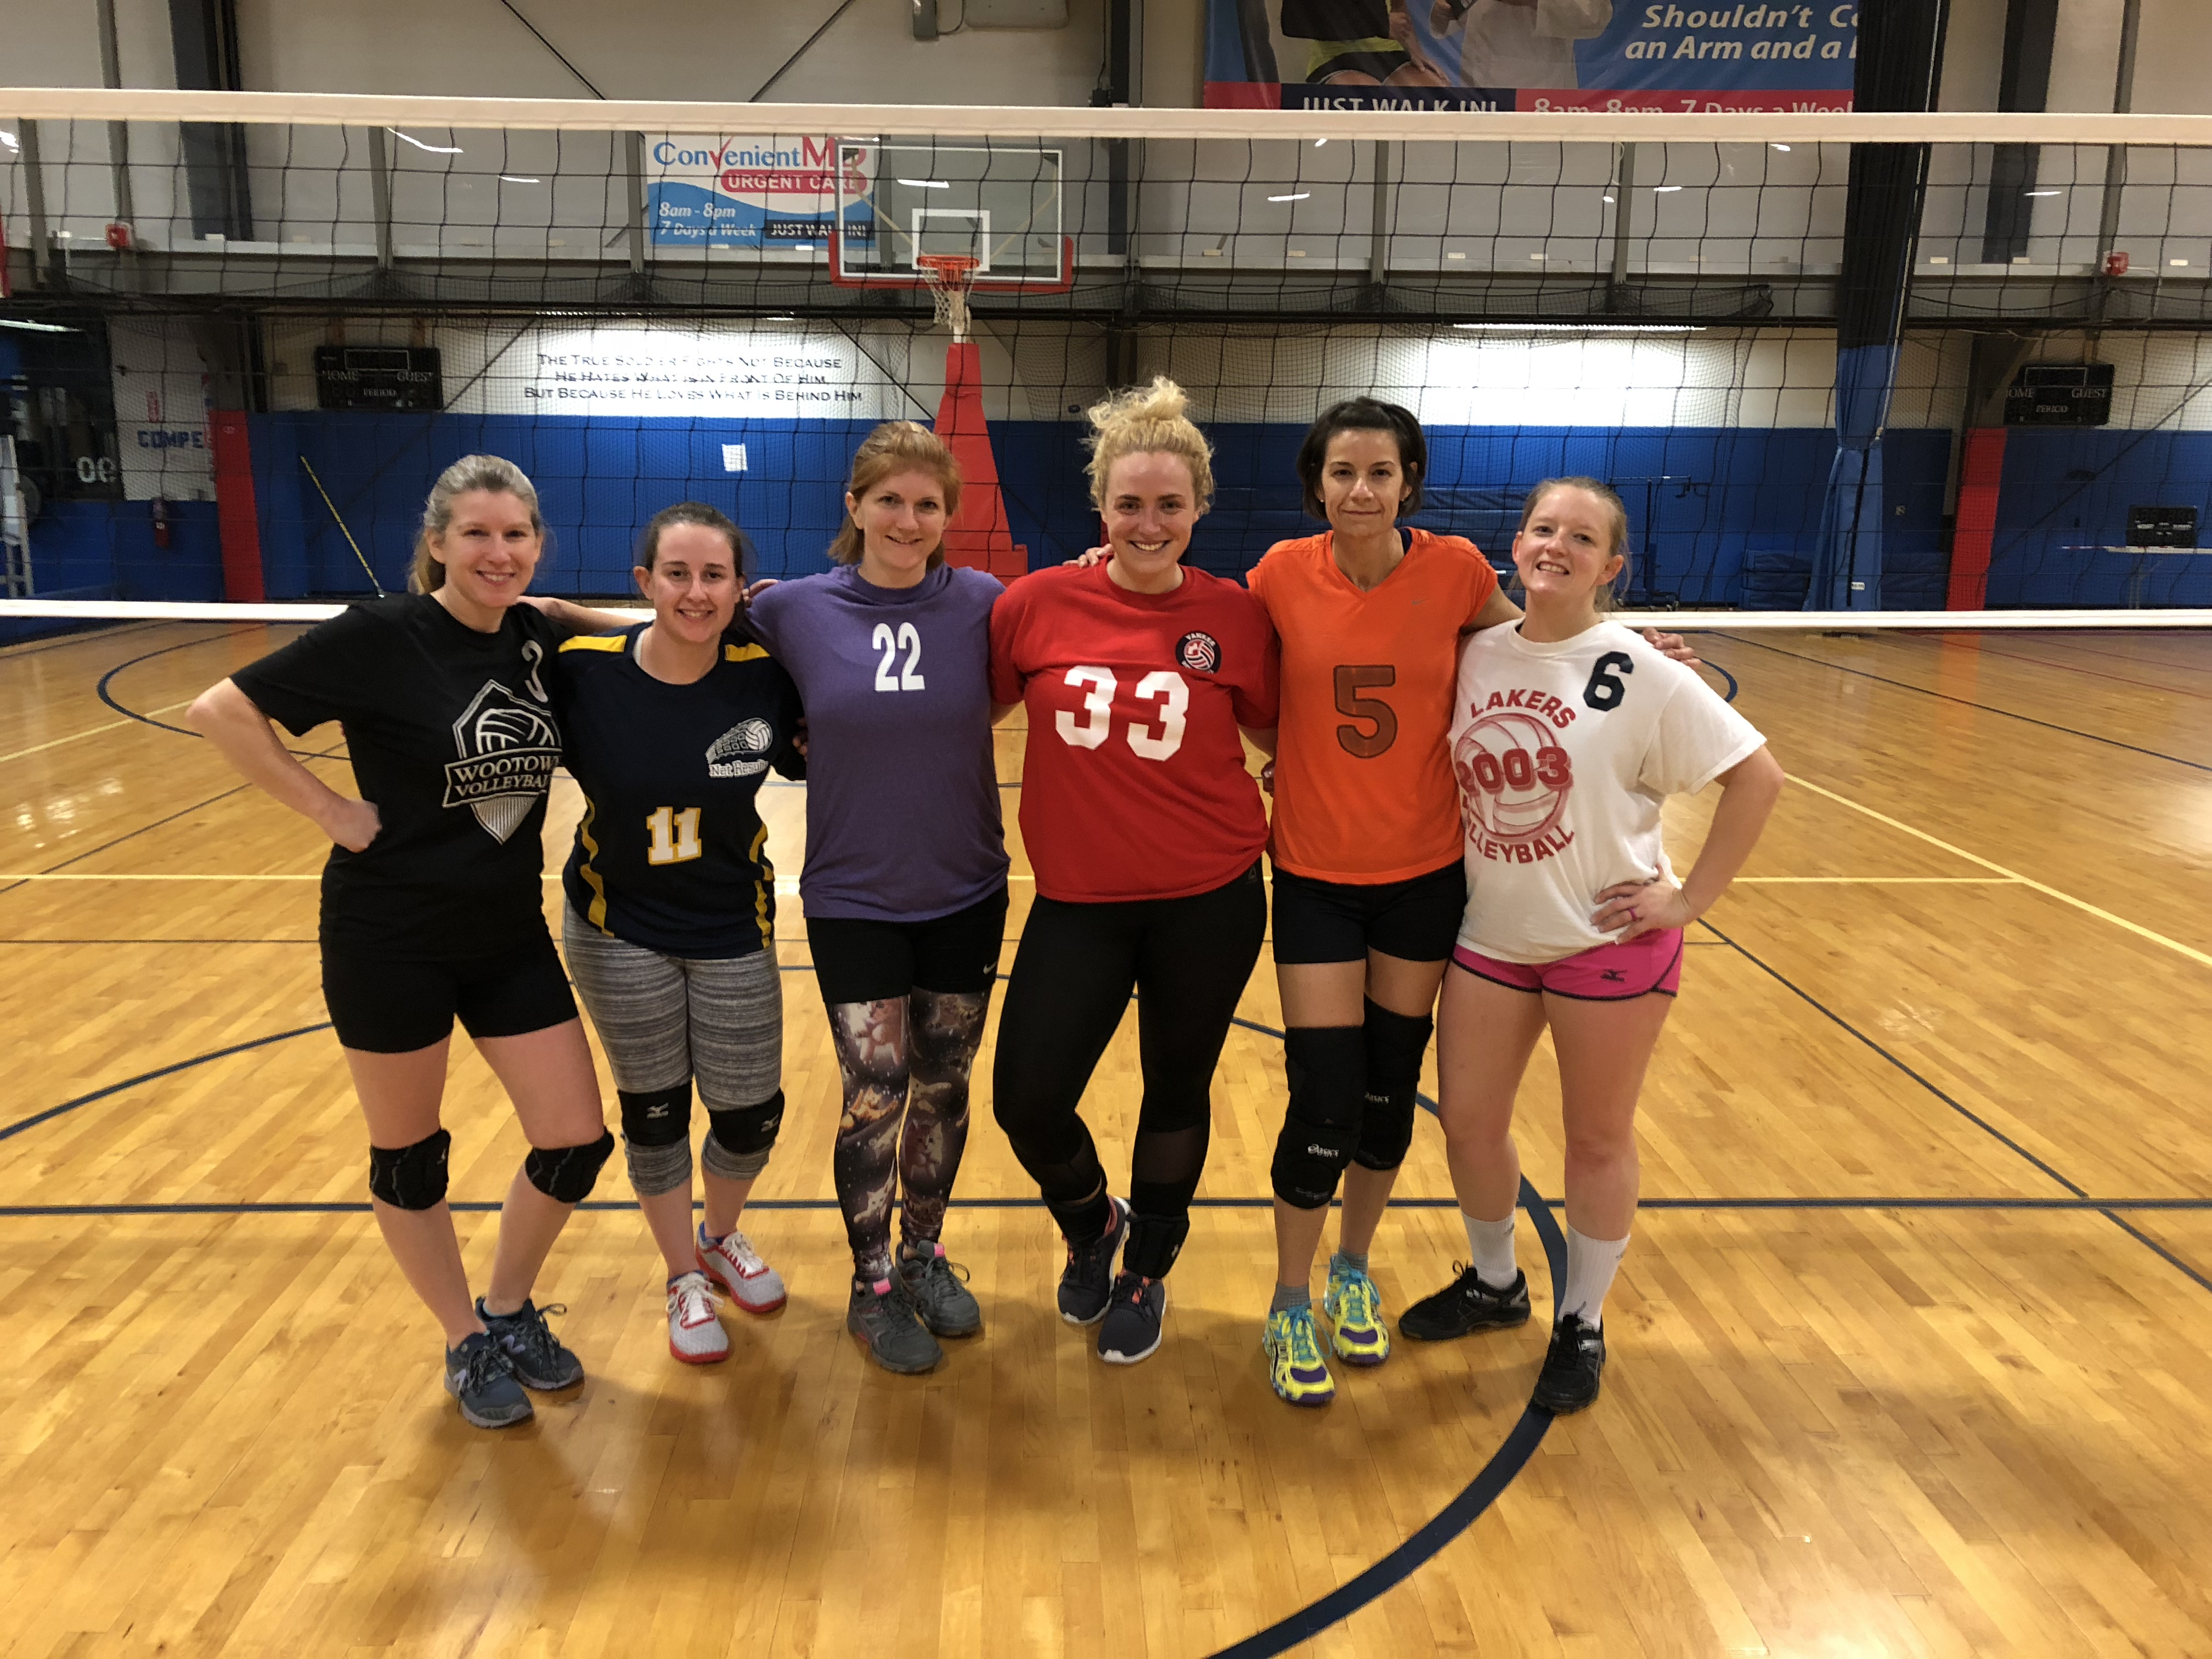 Volleyball stuff  - 11/18/2018